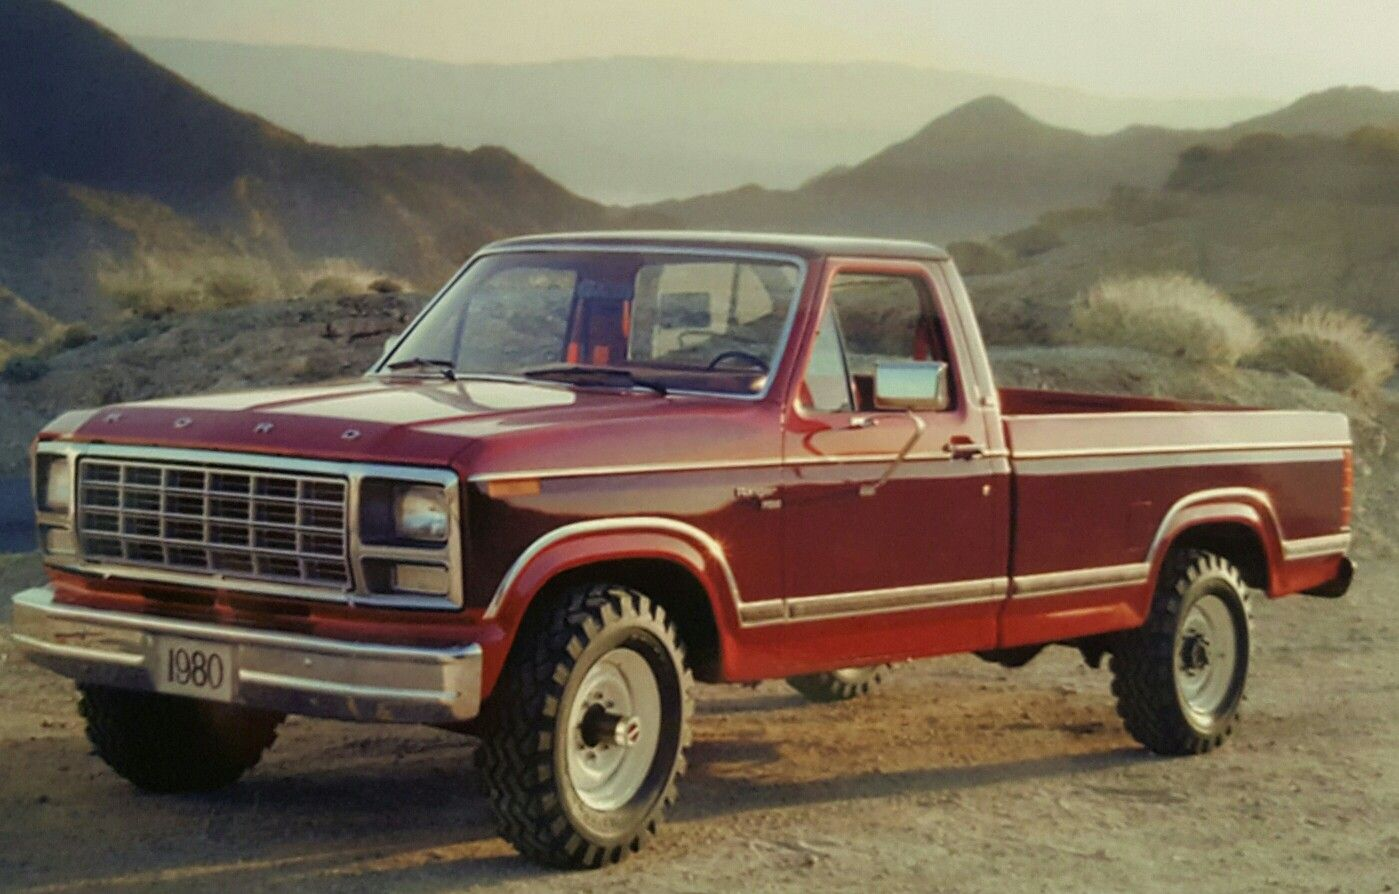 1980 Ford Ranger Xlt 4x4 Trucks Pinterest Pickup Bronco